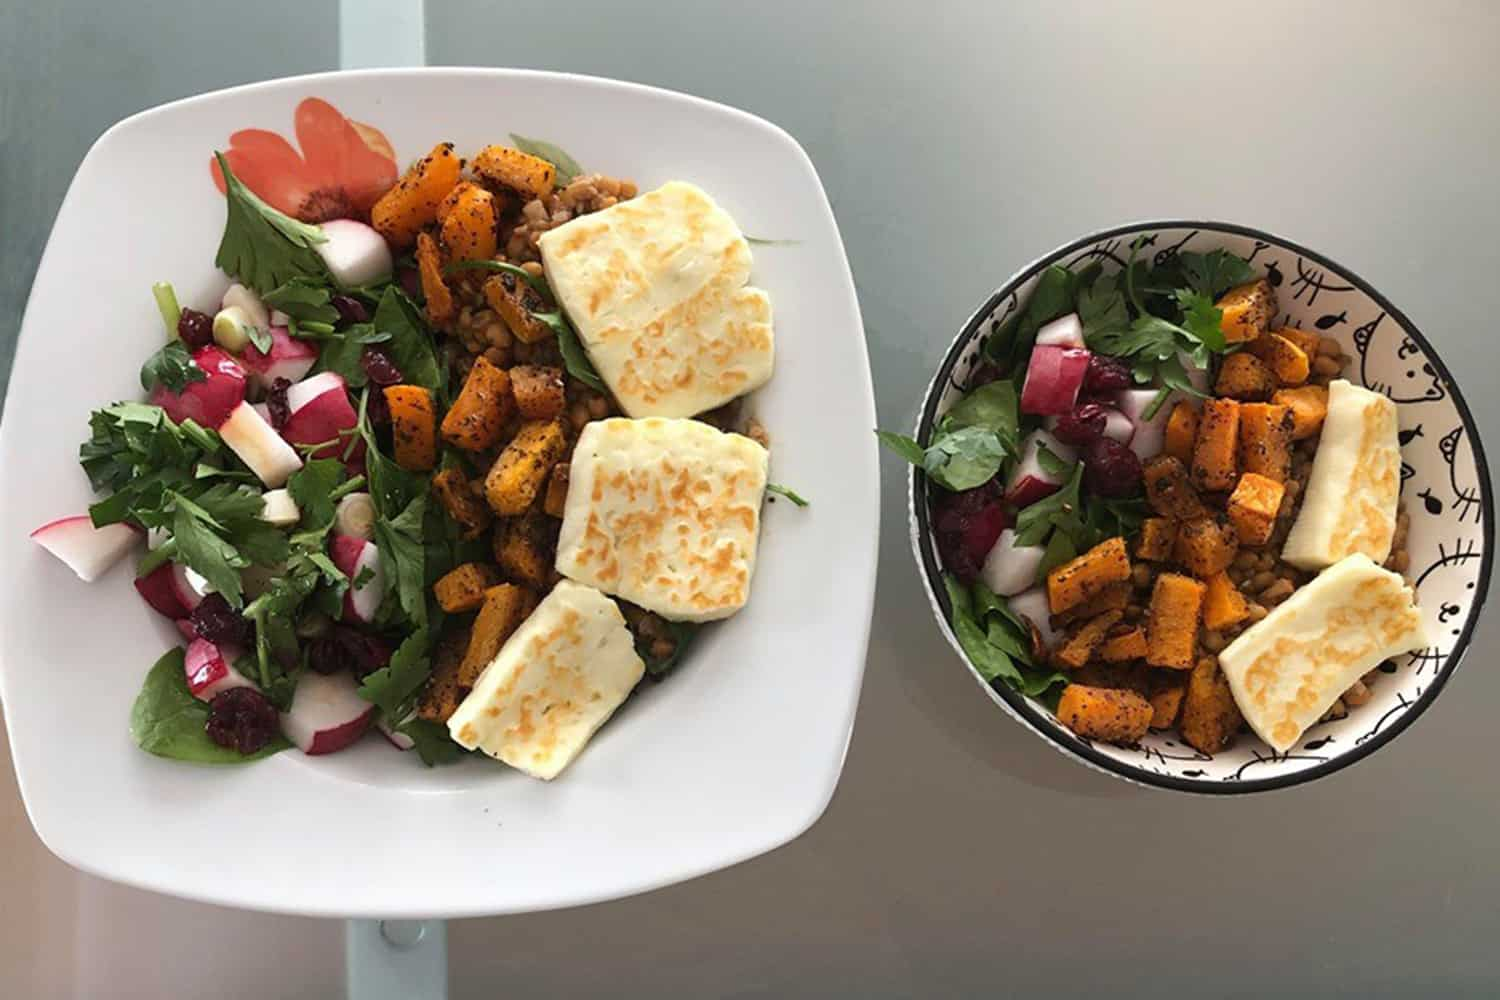 Spinach, Roasted Squash and Halloumi Cheese salad